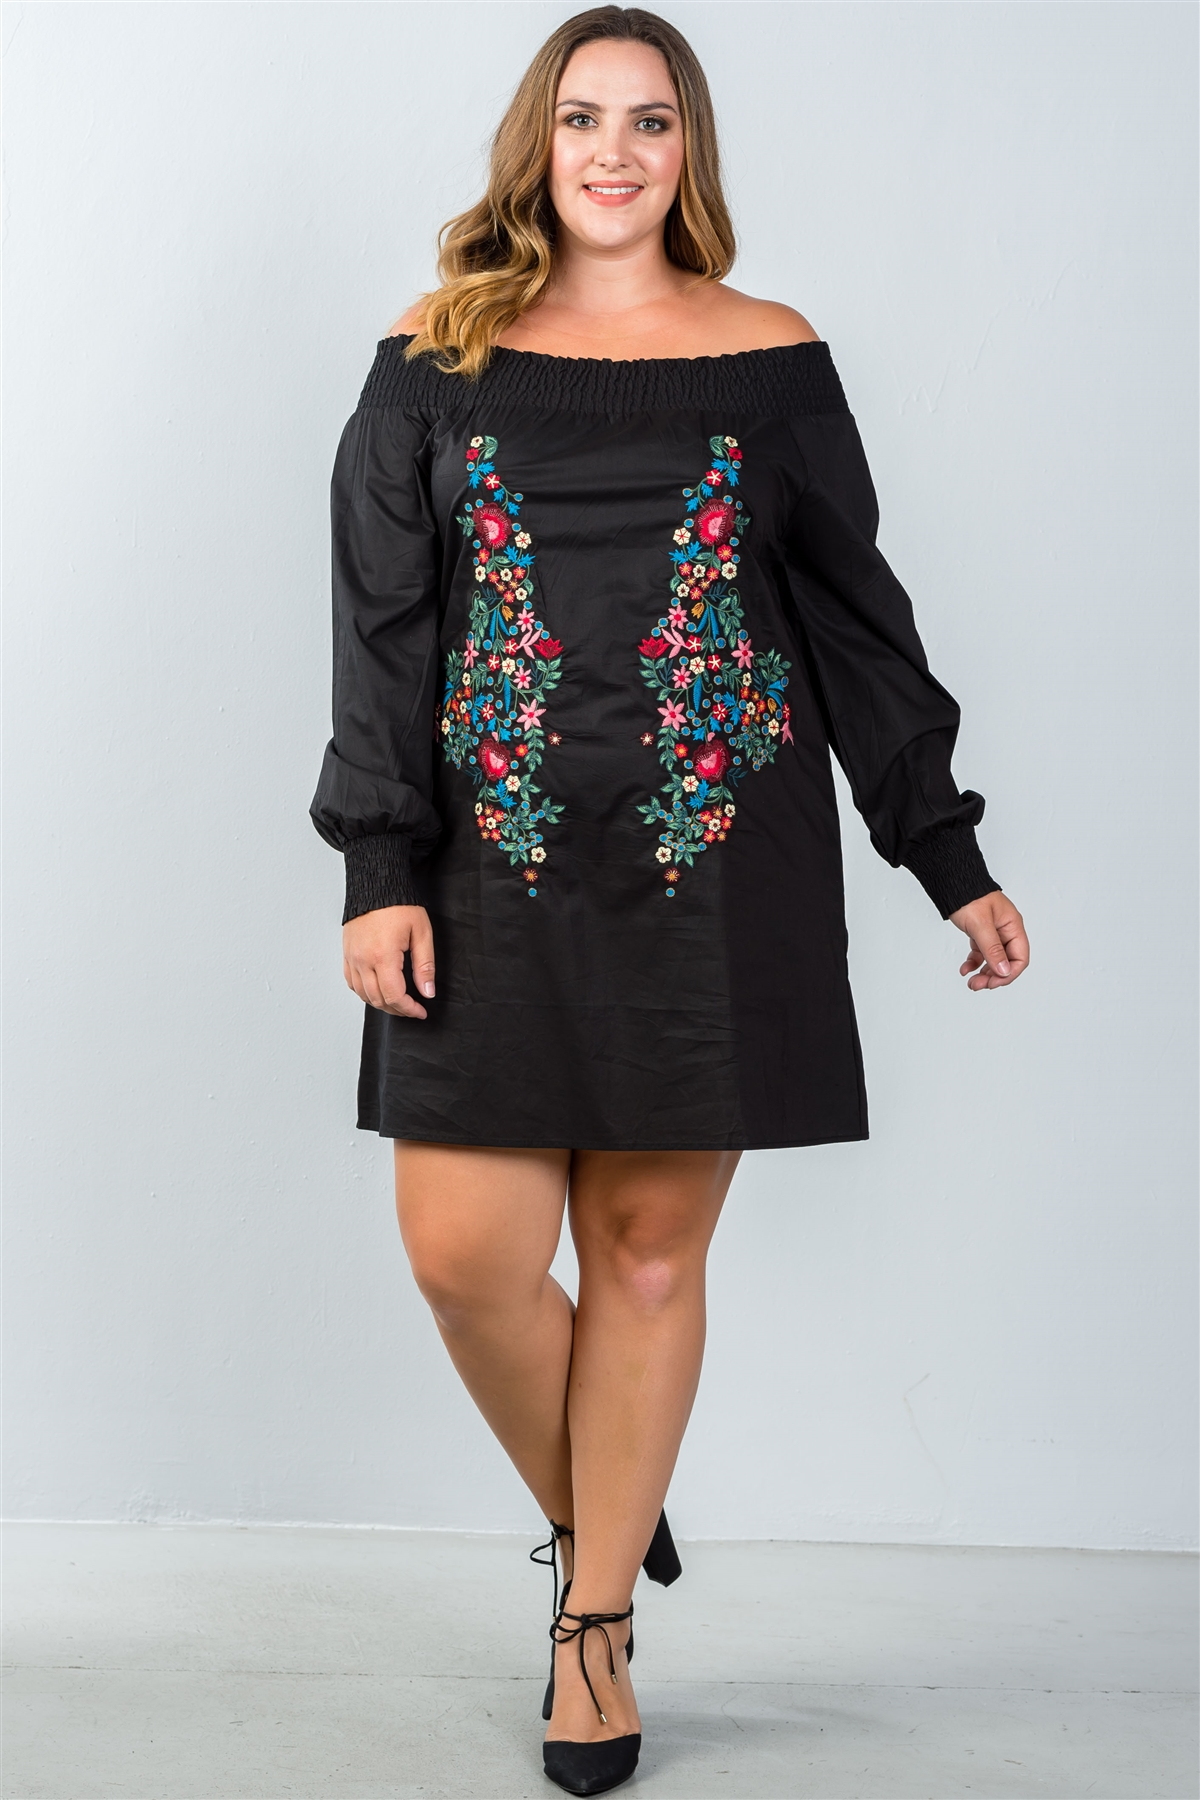 Plus Size Black Floral Embroidered Off The Shoulder Tunic Dress /2-2-2